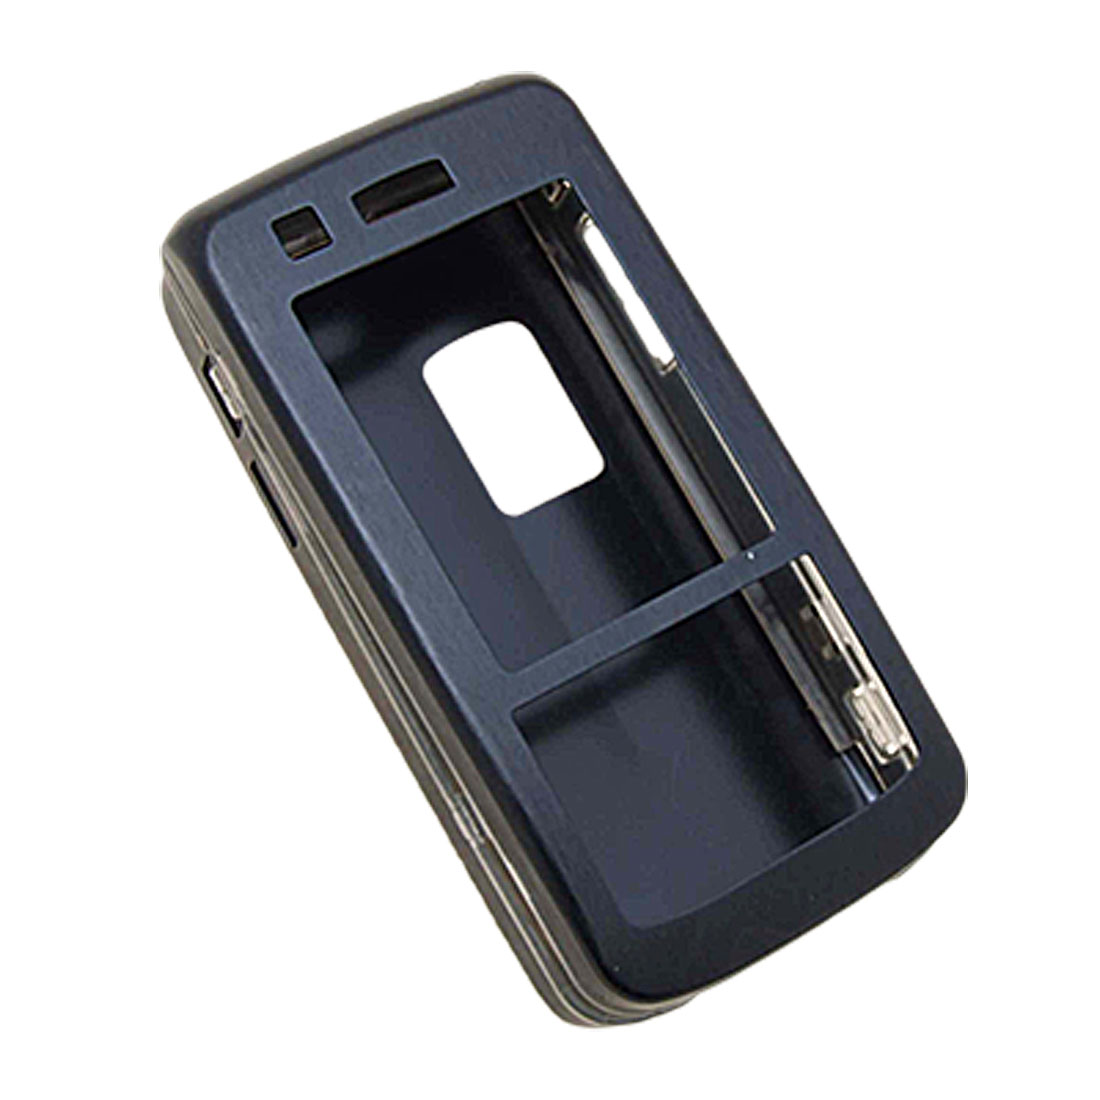 Navy Blue Super Slim Aluminum Protector Hard Case for Nokia 6288